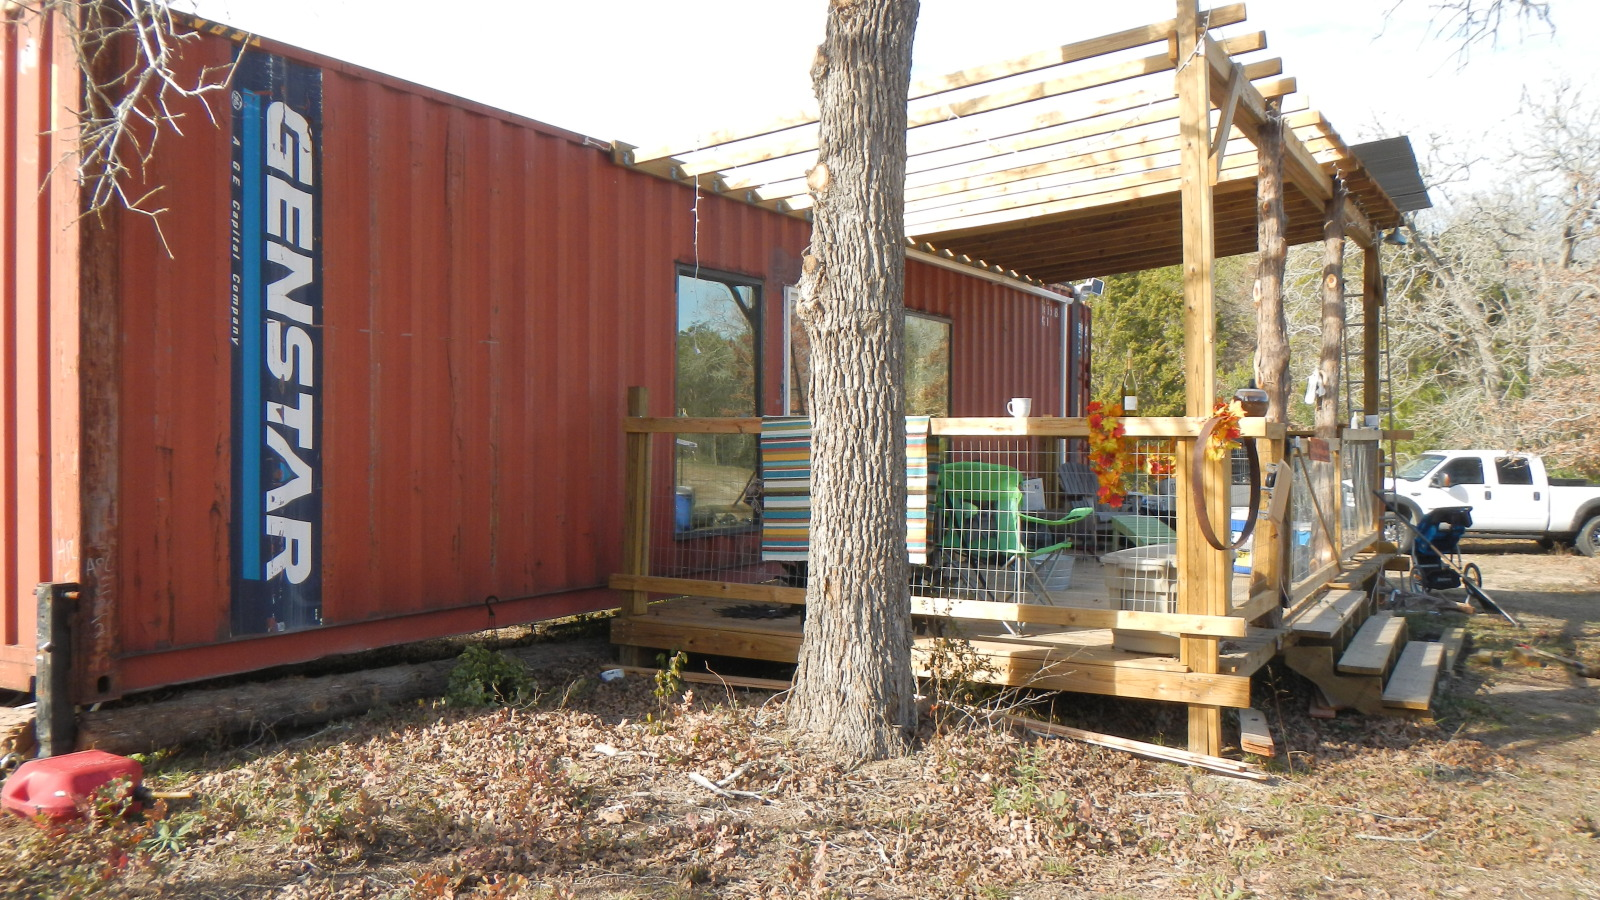 Shipping container homes 40ft shipping container family home wendy bowman fords prarie texas - Cargo container home builders ...